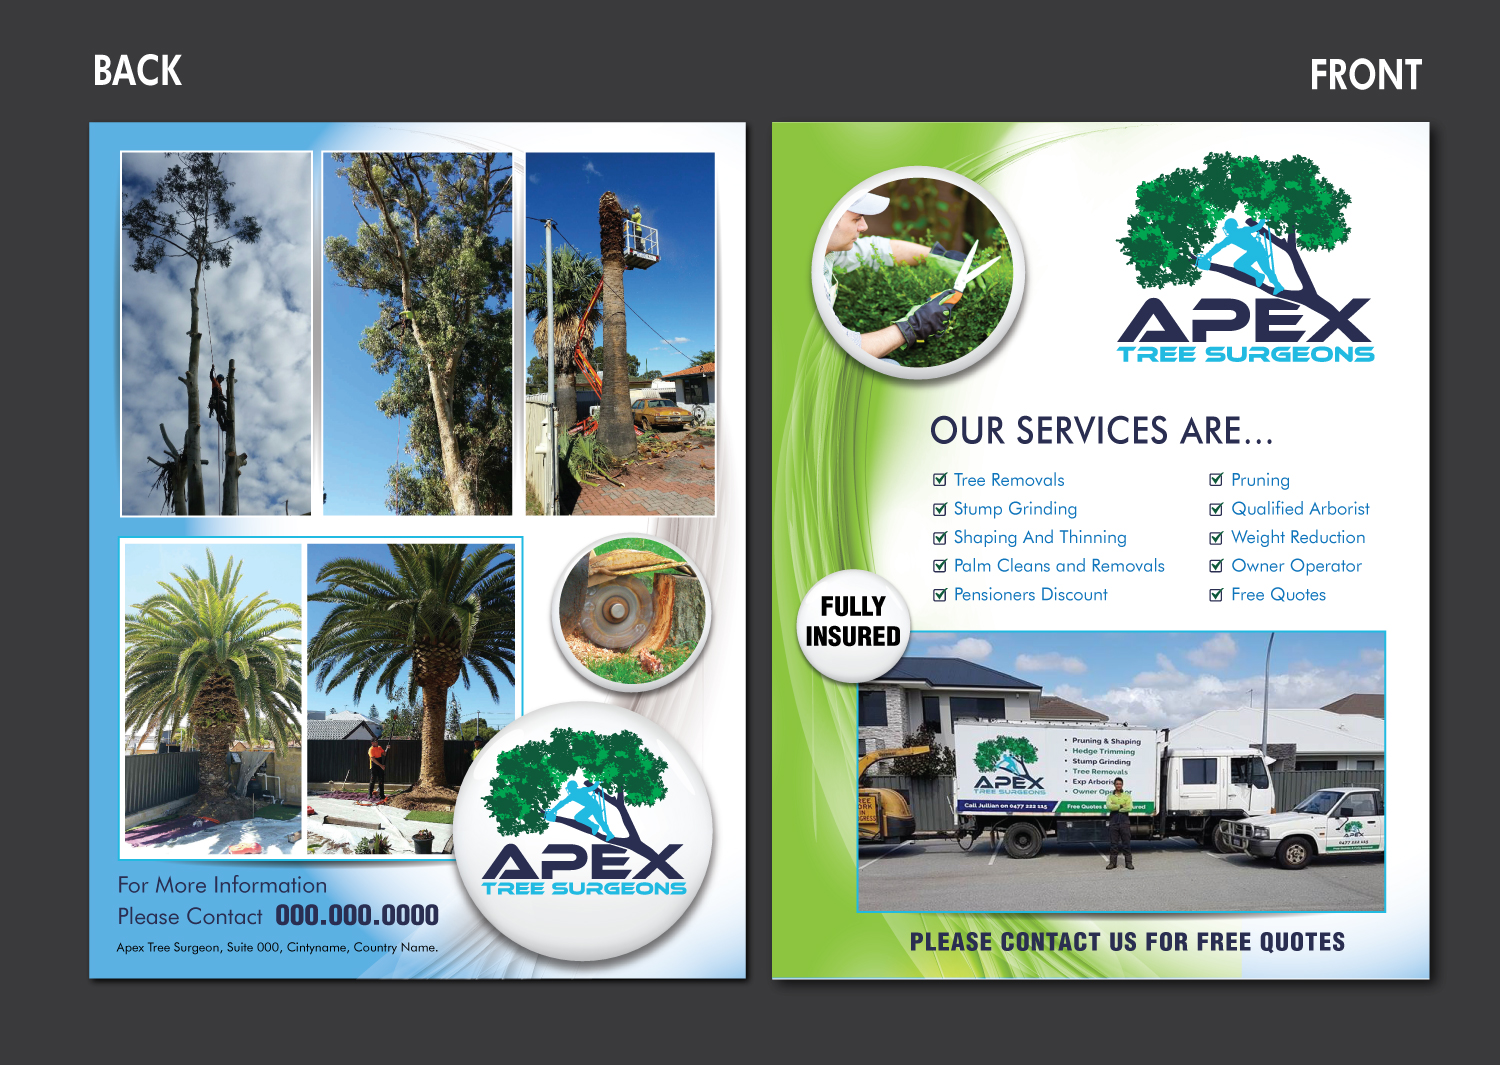 Elegant Playful It Company Flyer Design For Apex Tree Surgeons By Meet007 Design 12156122